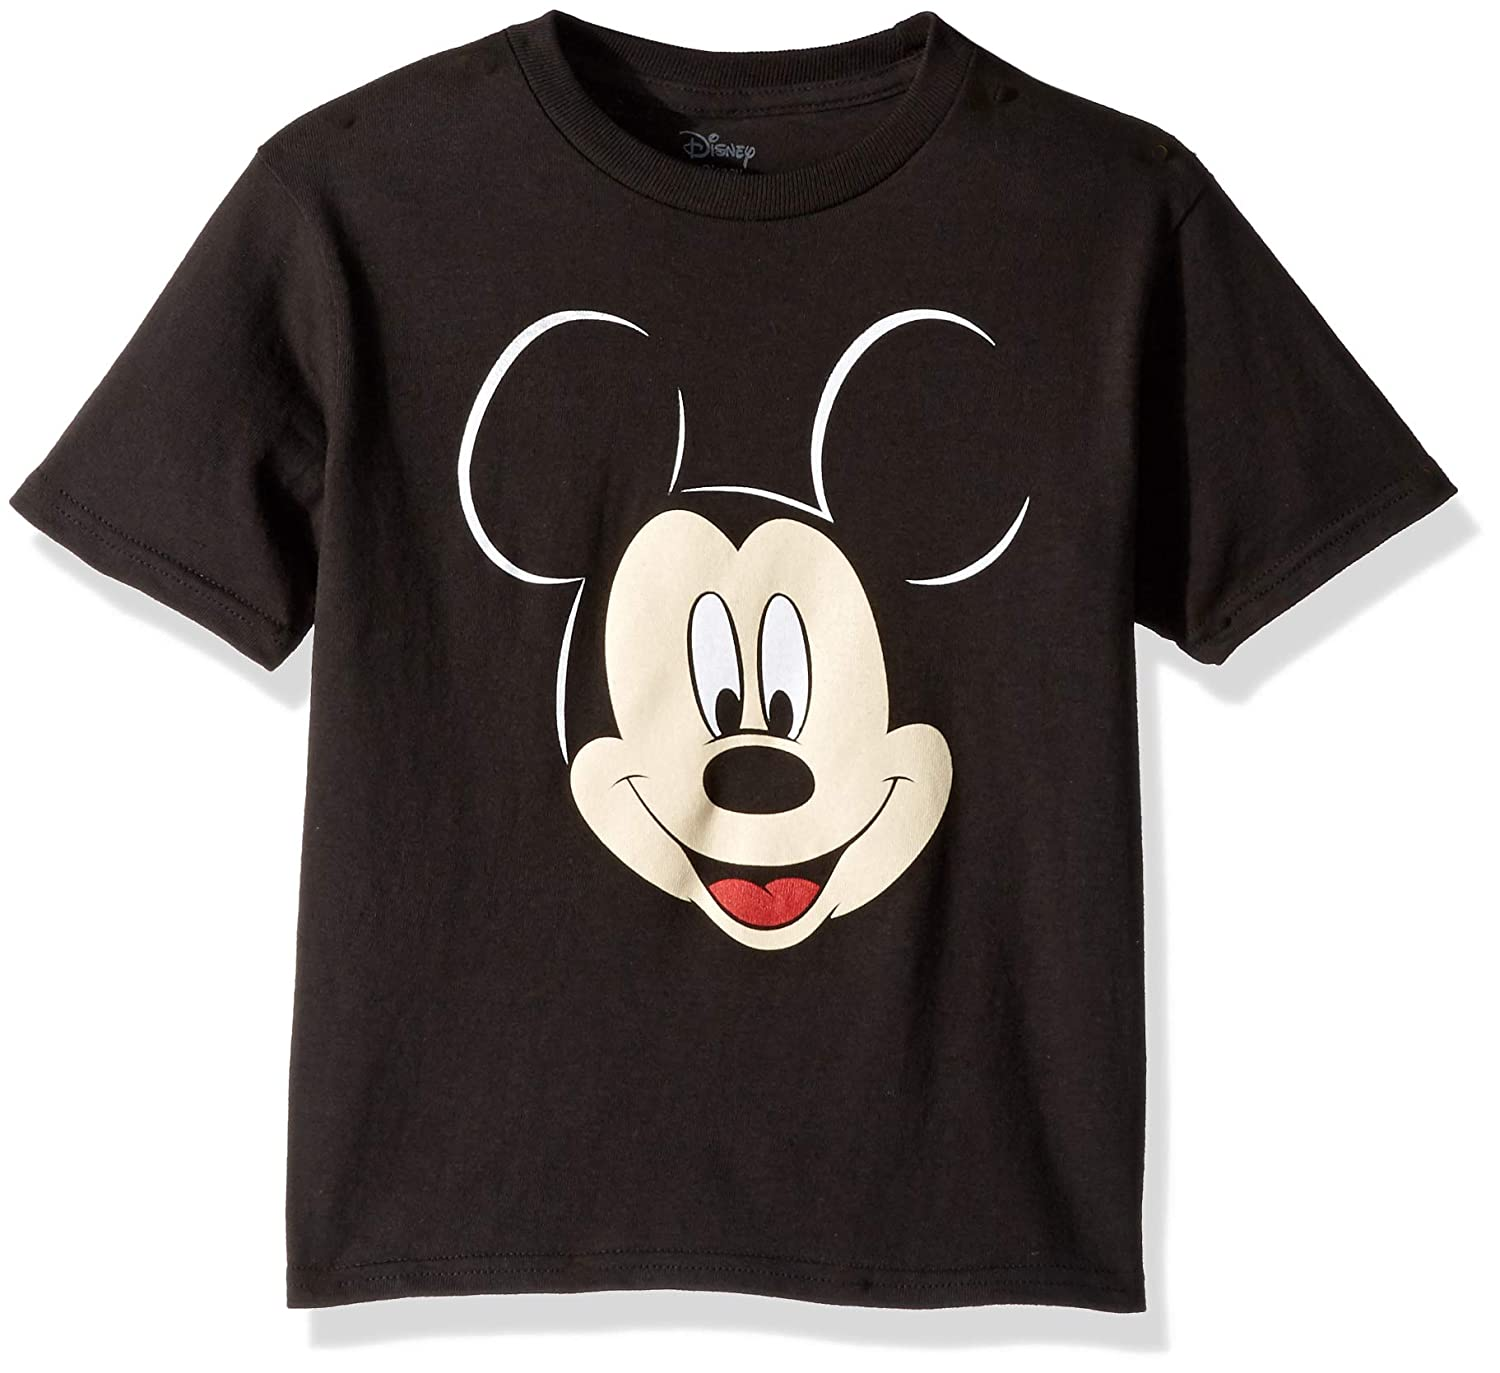 Boys Disney Mickey Mouse Face Long Sleeved Top Ages 2-8 Years Tee Shirt